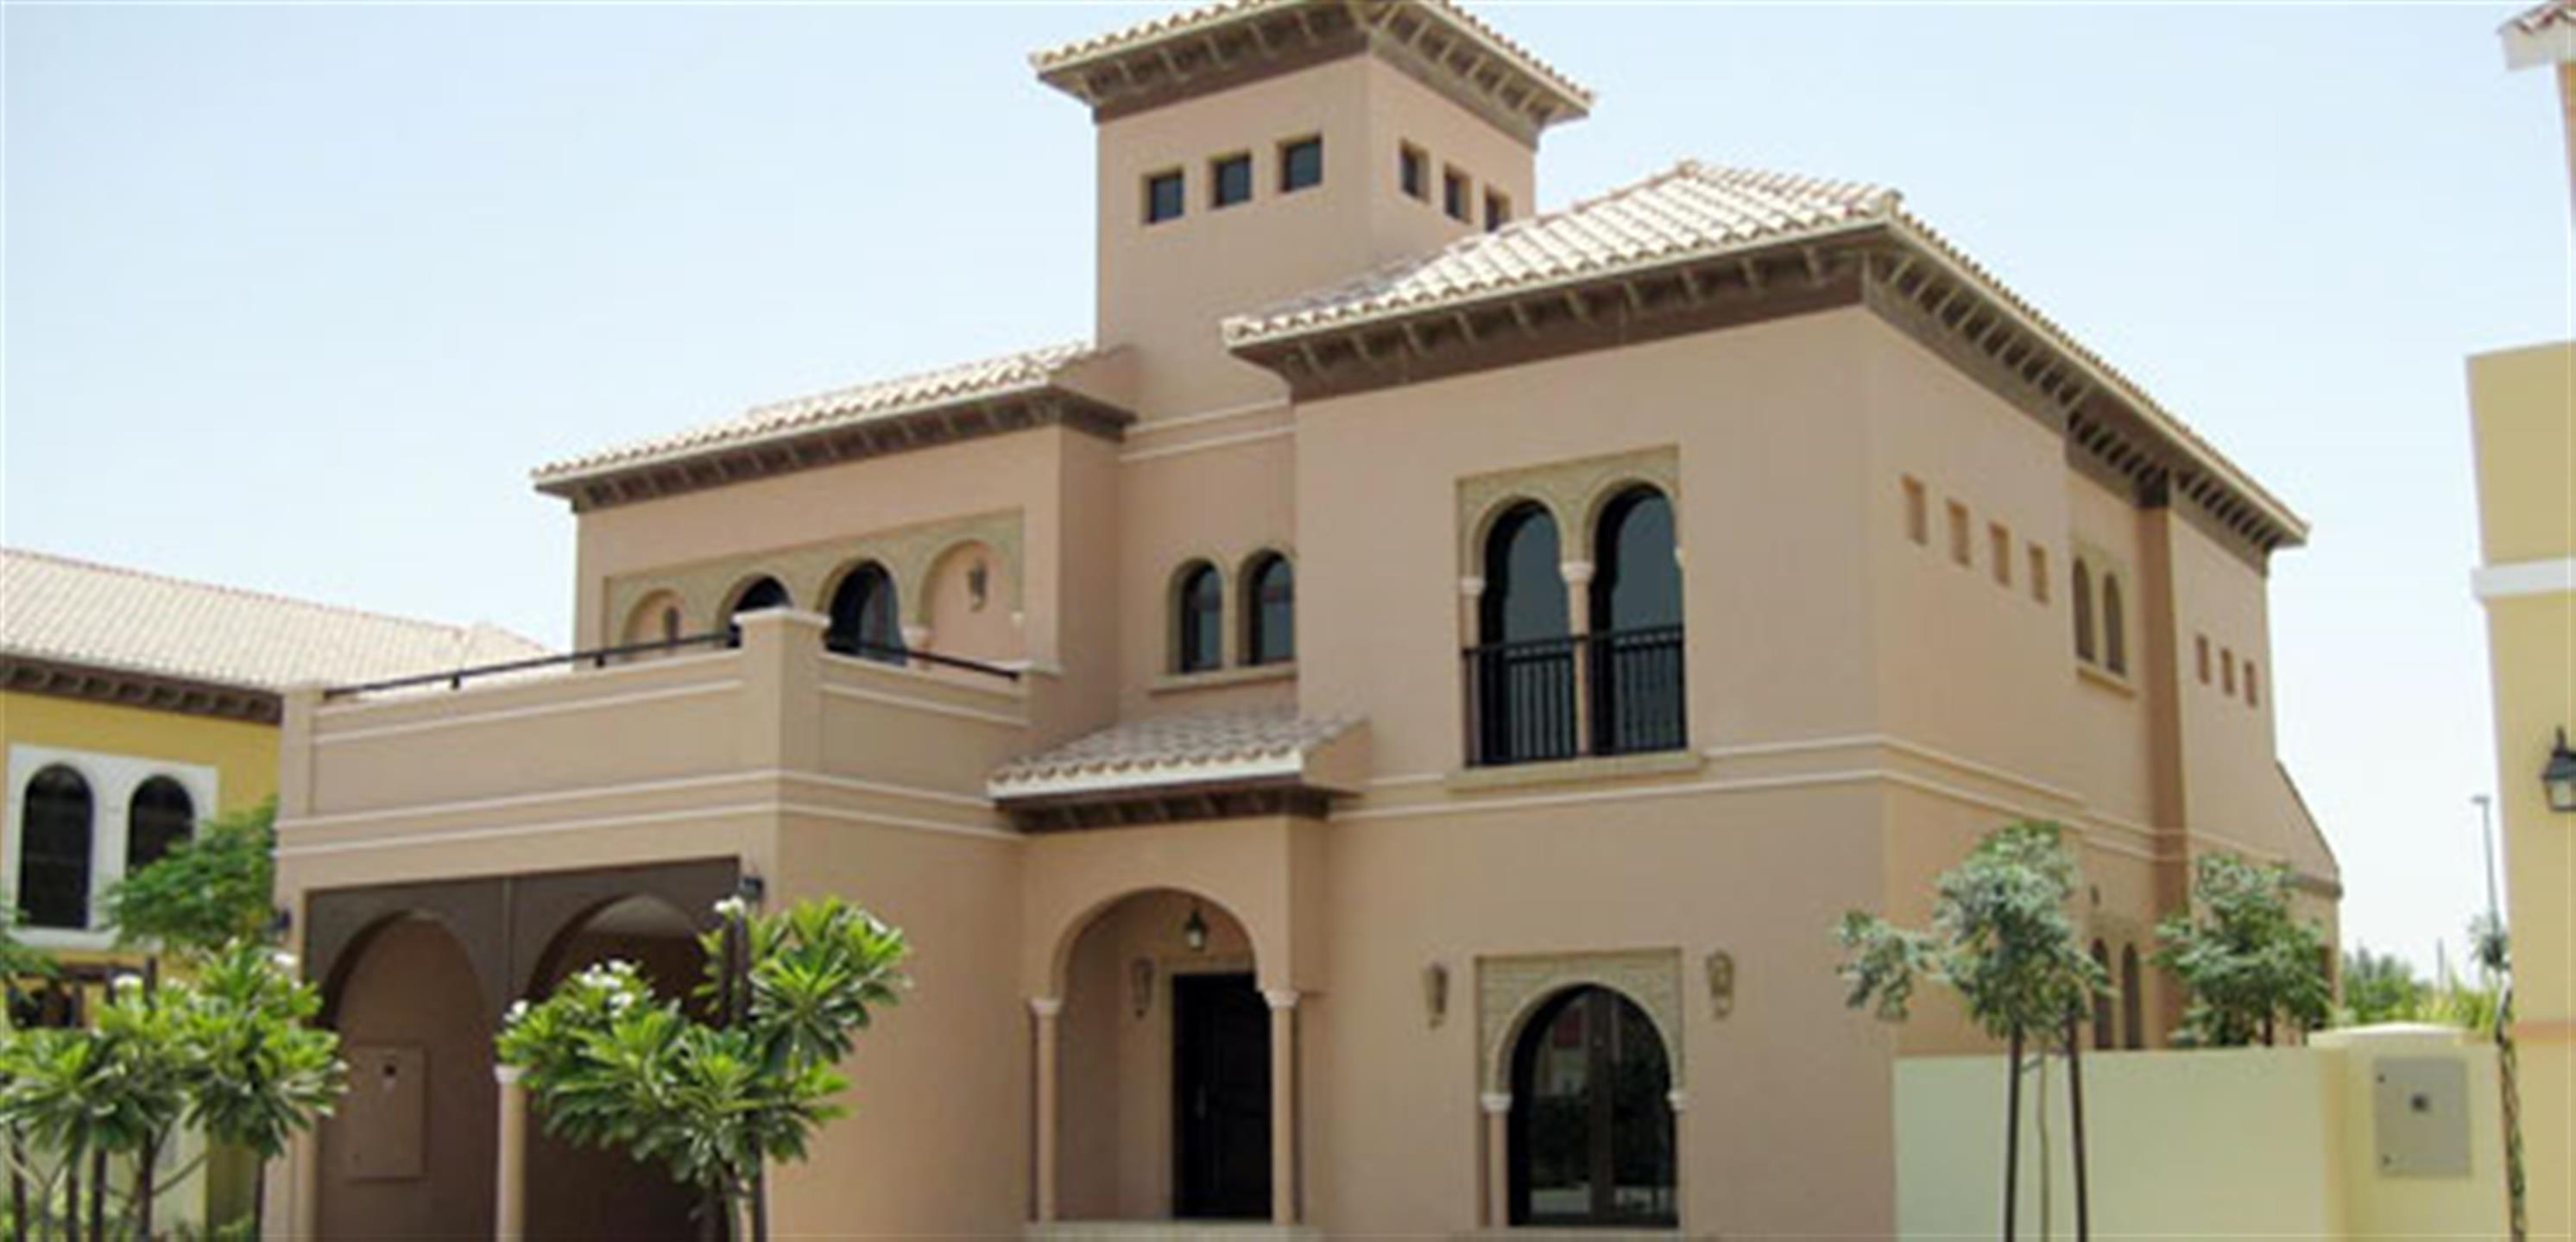 Residential Houses/Villa, for Sale in United Arab Emirates, Dubai, Dubai Land